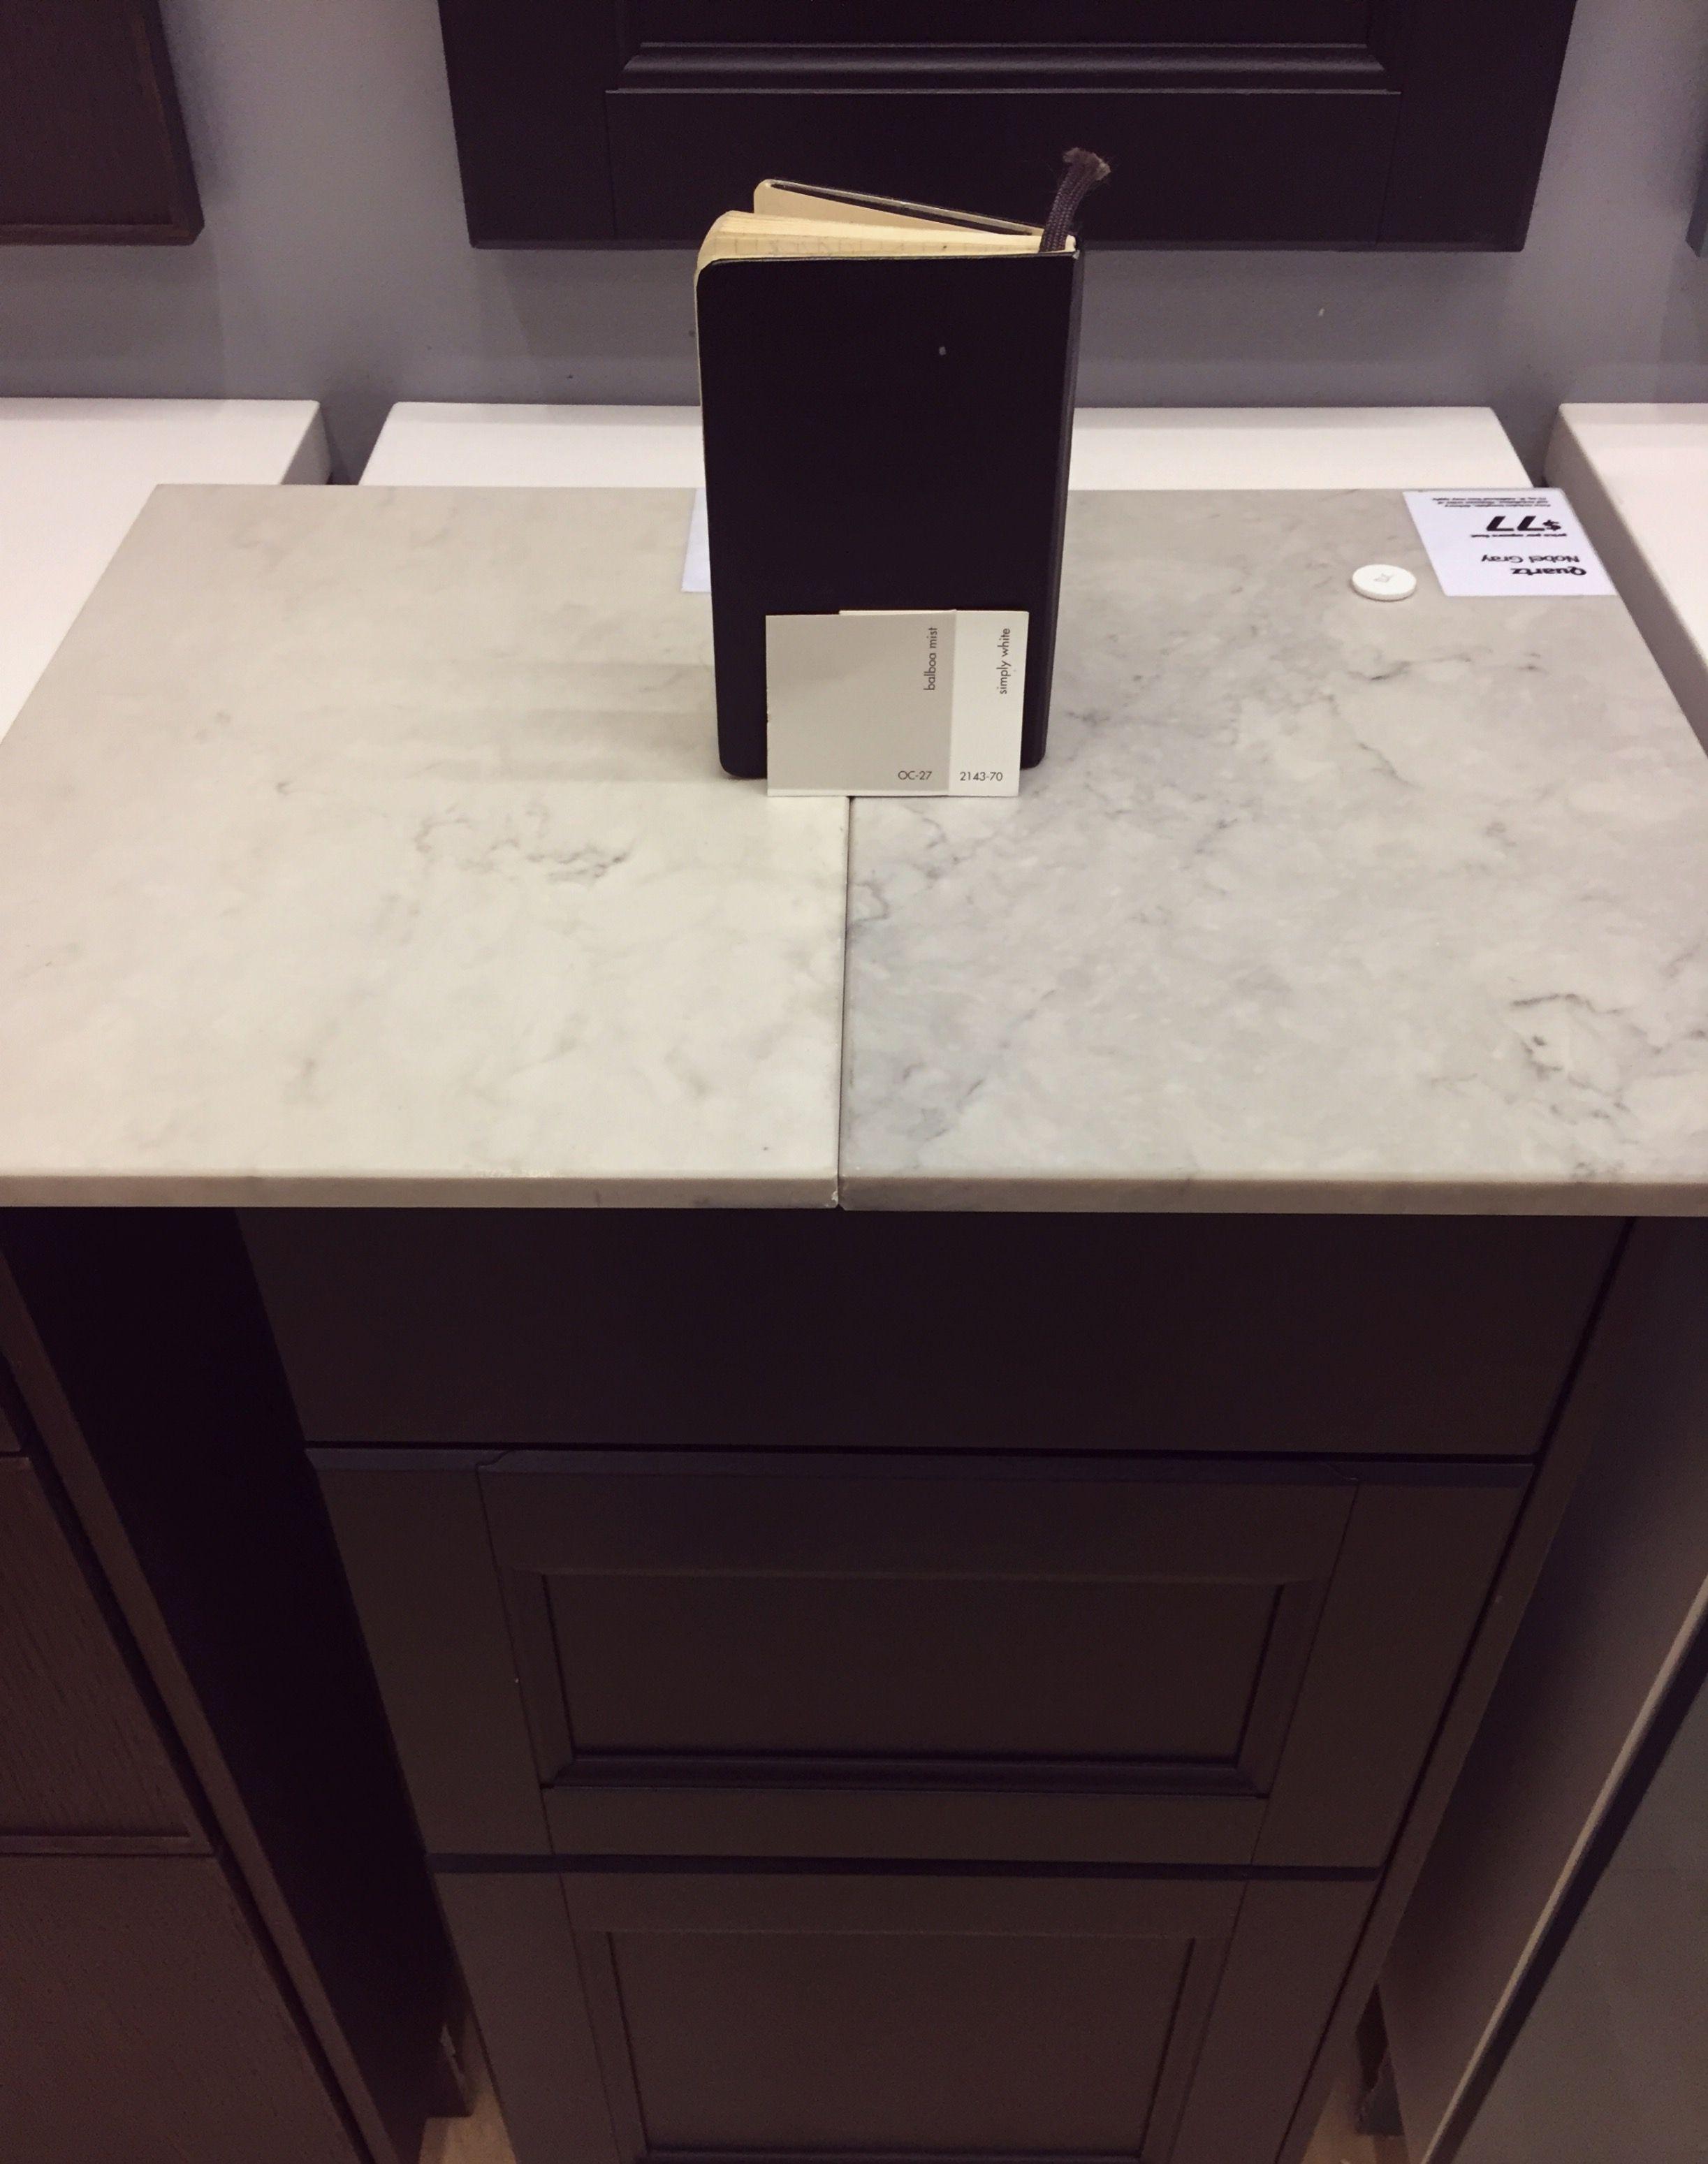 Quartz Countertops Part One